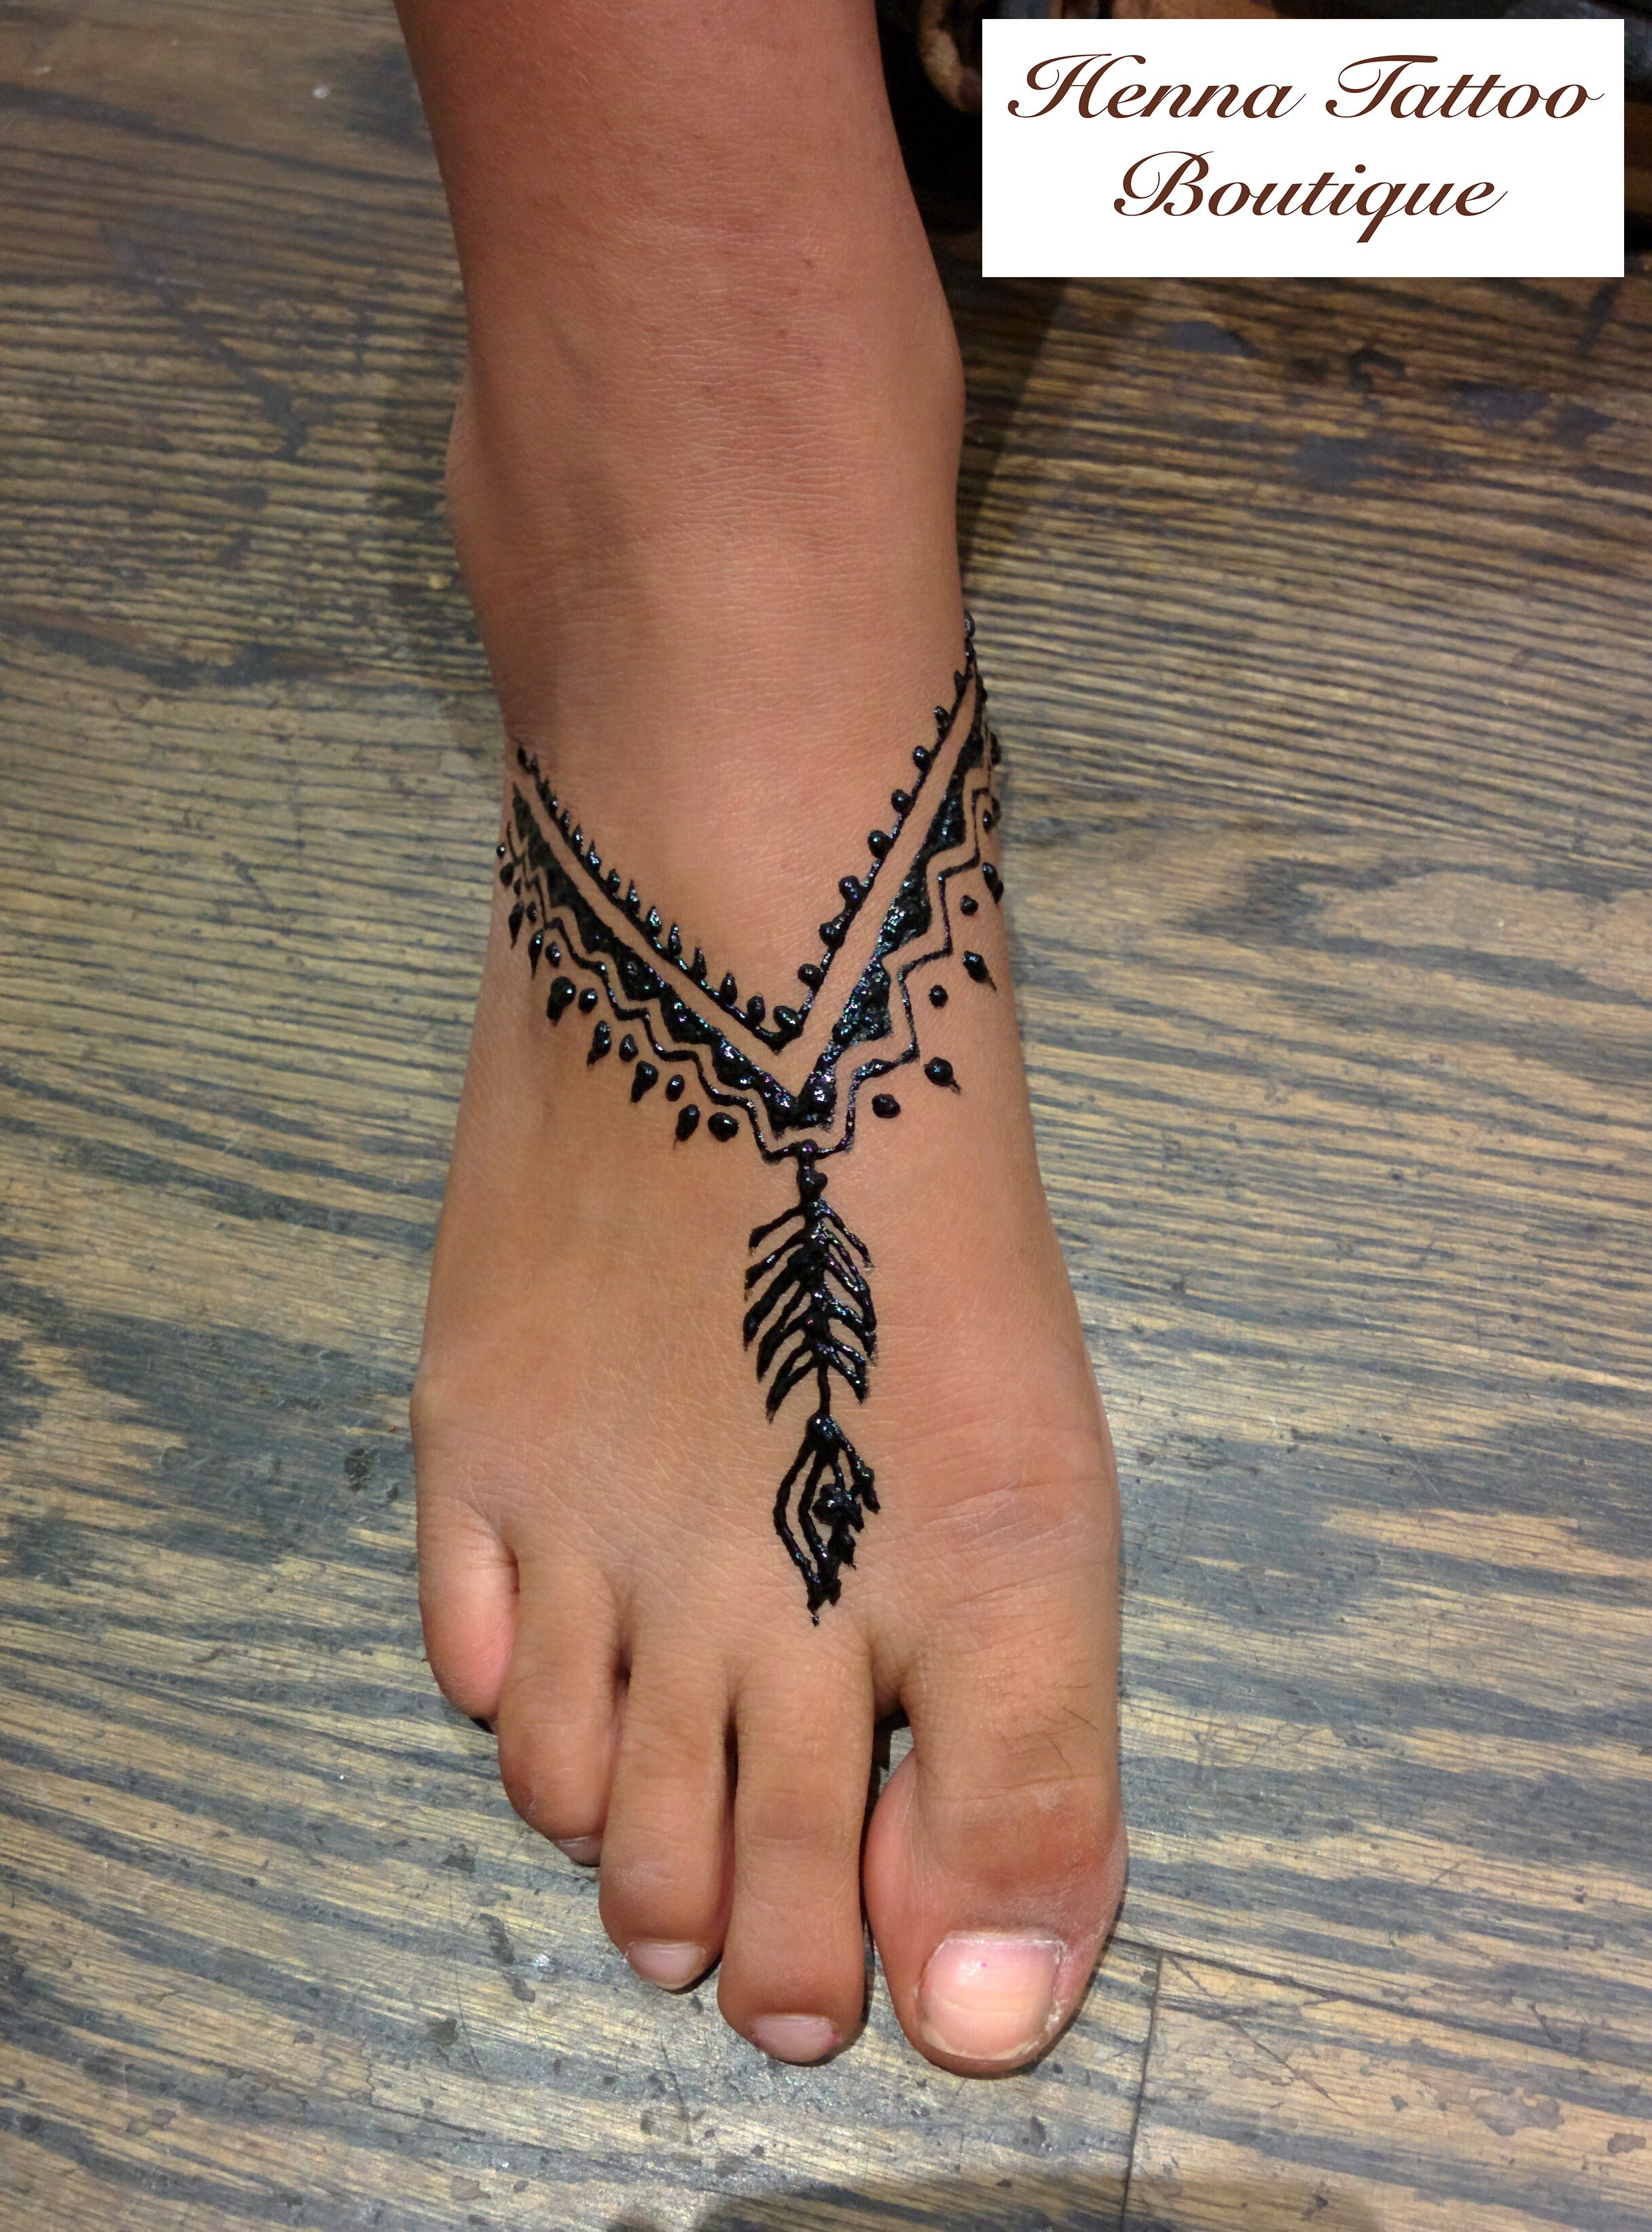 boho feet henna tattoo designs henna pinterest foot henna henna tattoo designs and hennas. Black Bedroom Furniture Sets. Home Design Ideas